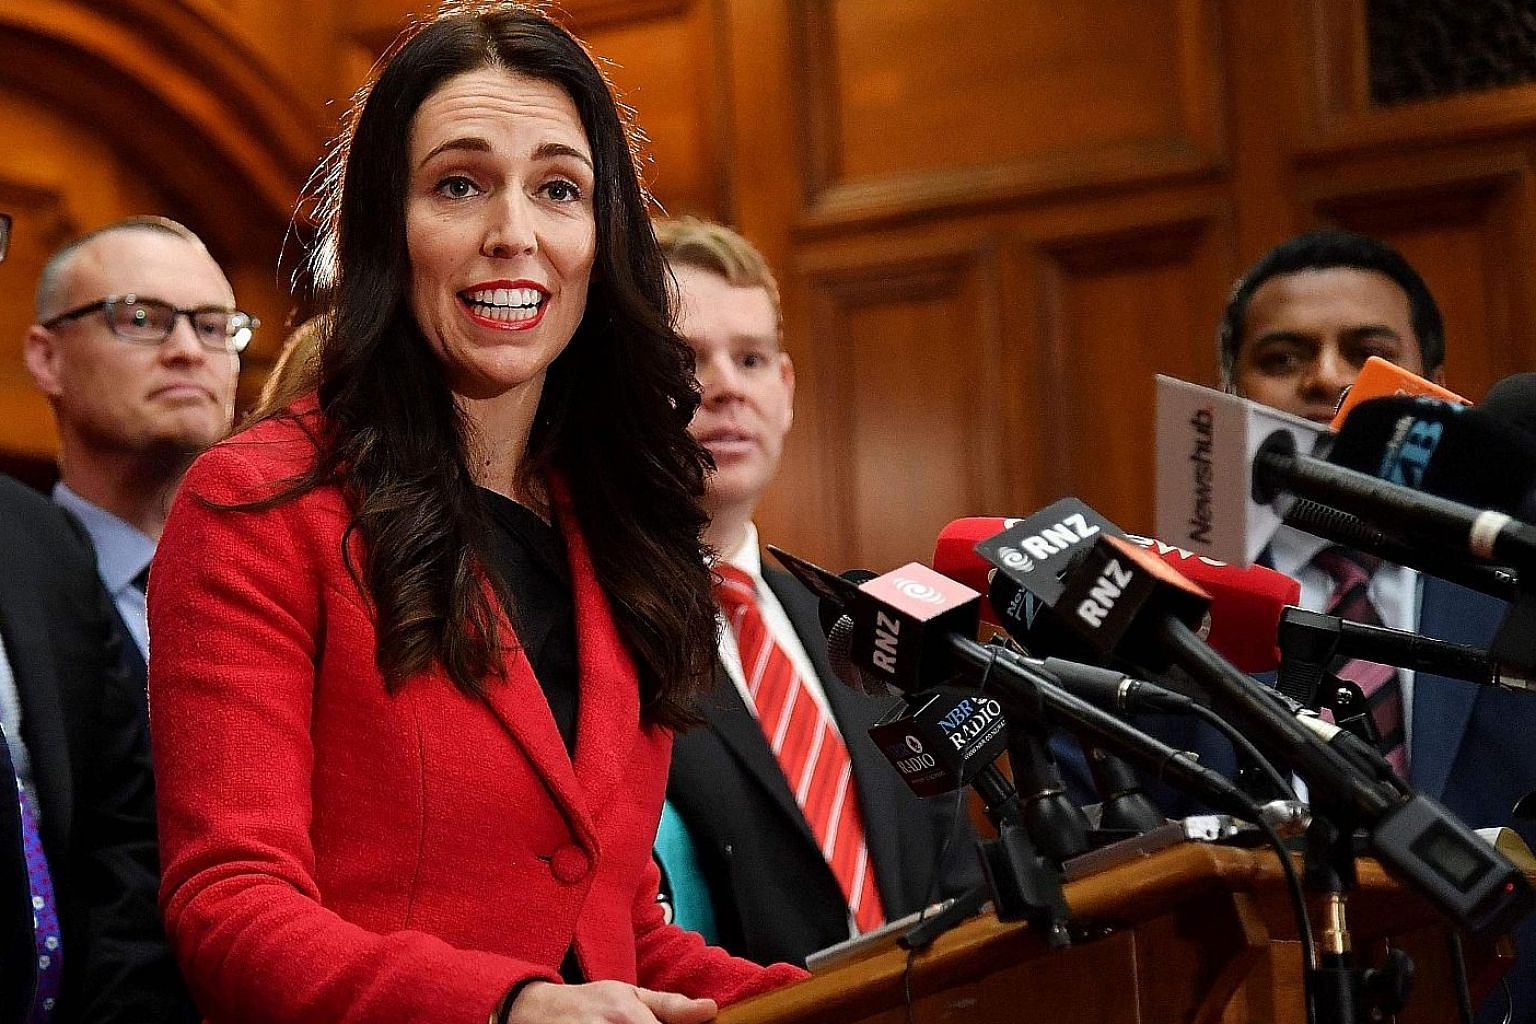 """Ms Jacinda Ardern grew up in Murupara, which had a mainly Maori population, and another small town, Morrinsville. She said her parents instilled in her a """"social conscience"""" that has driven her political career. She is poised to become New Zealand's"""